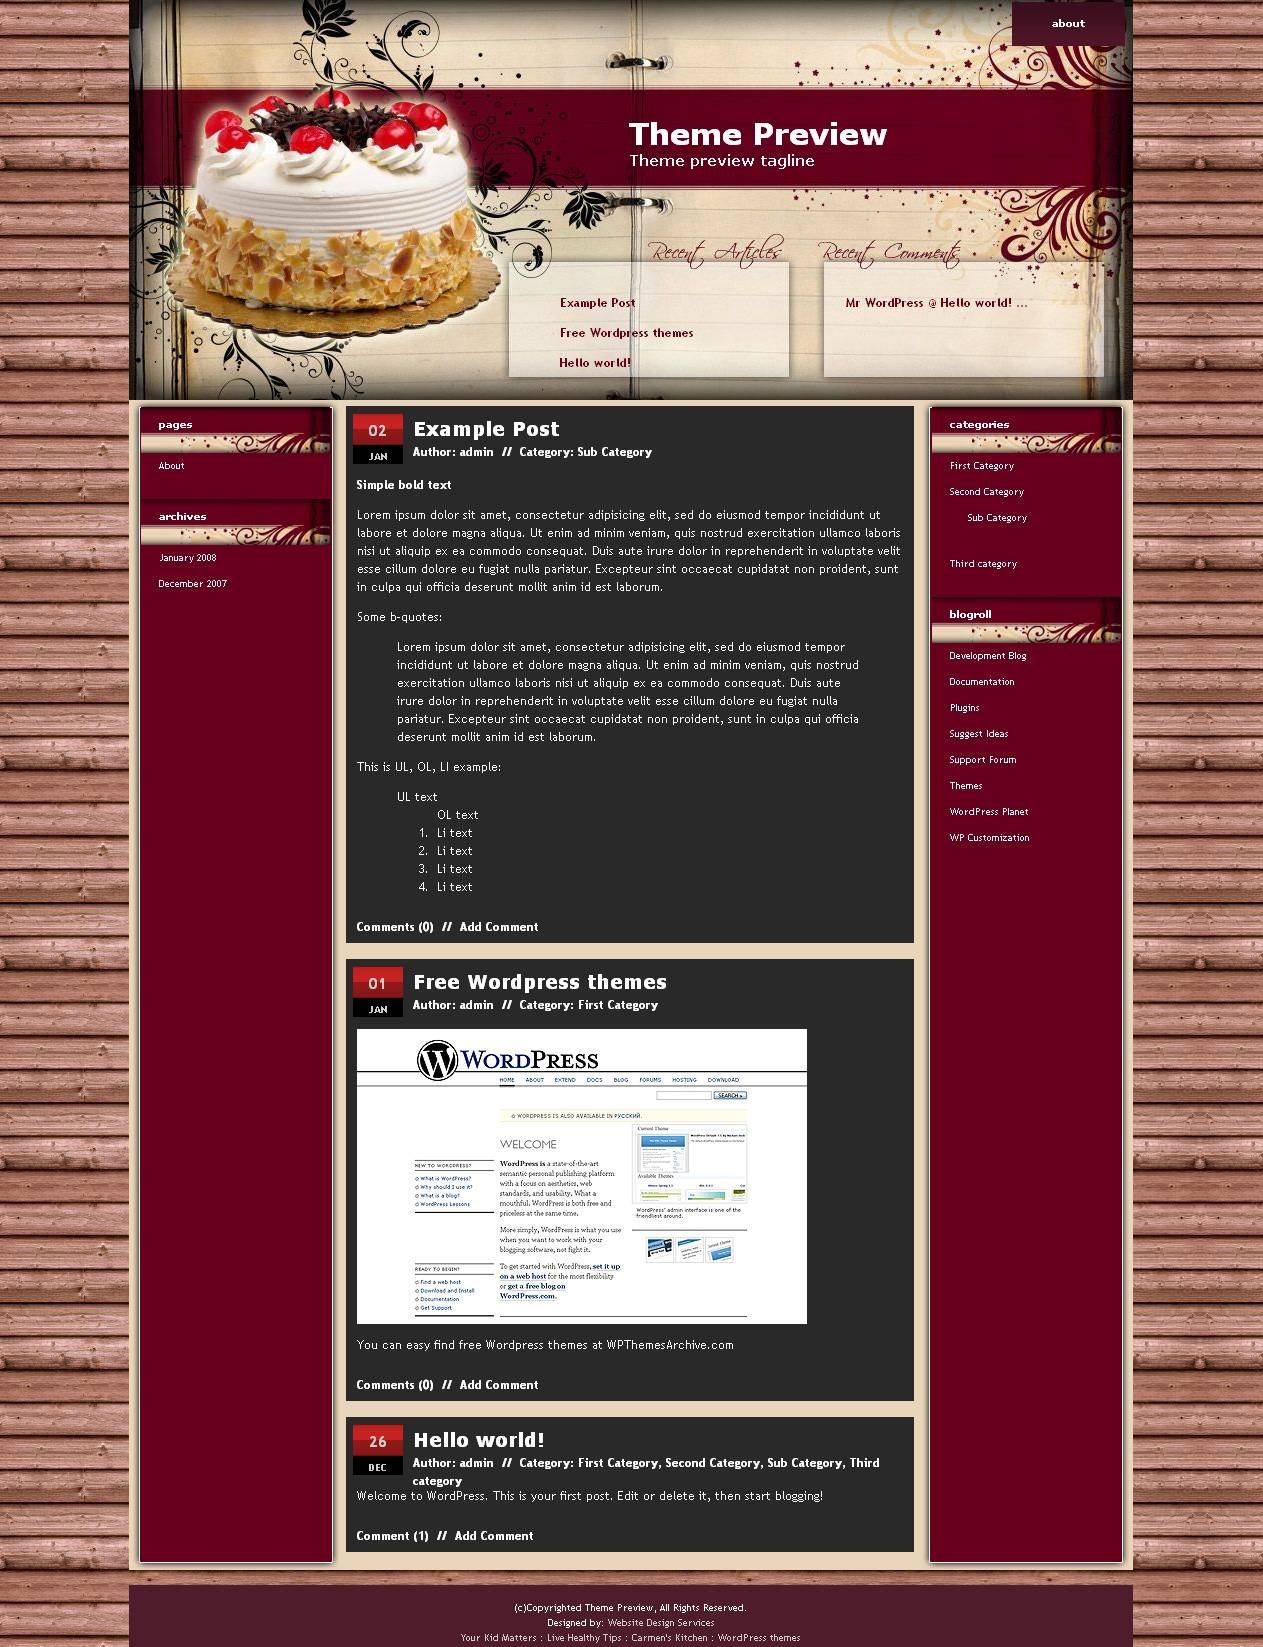 download Cake Recipe theme